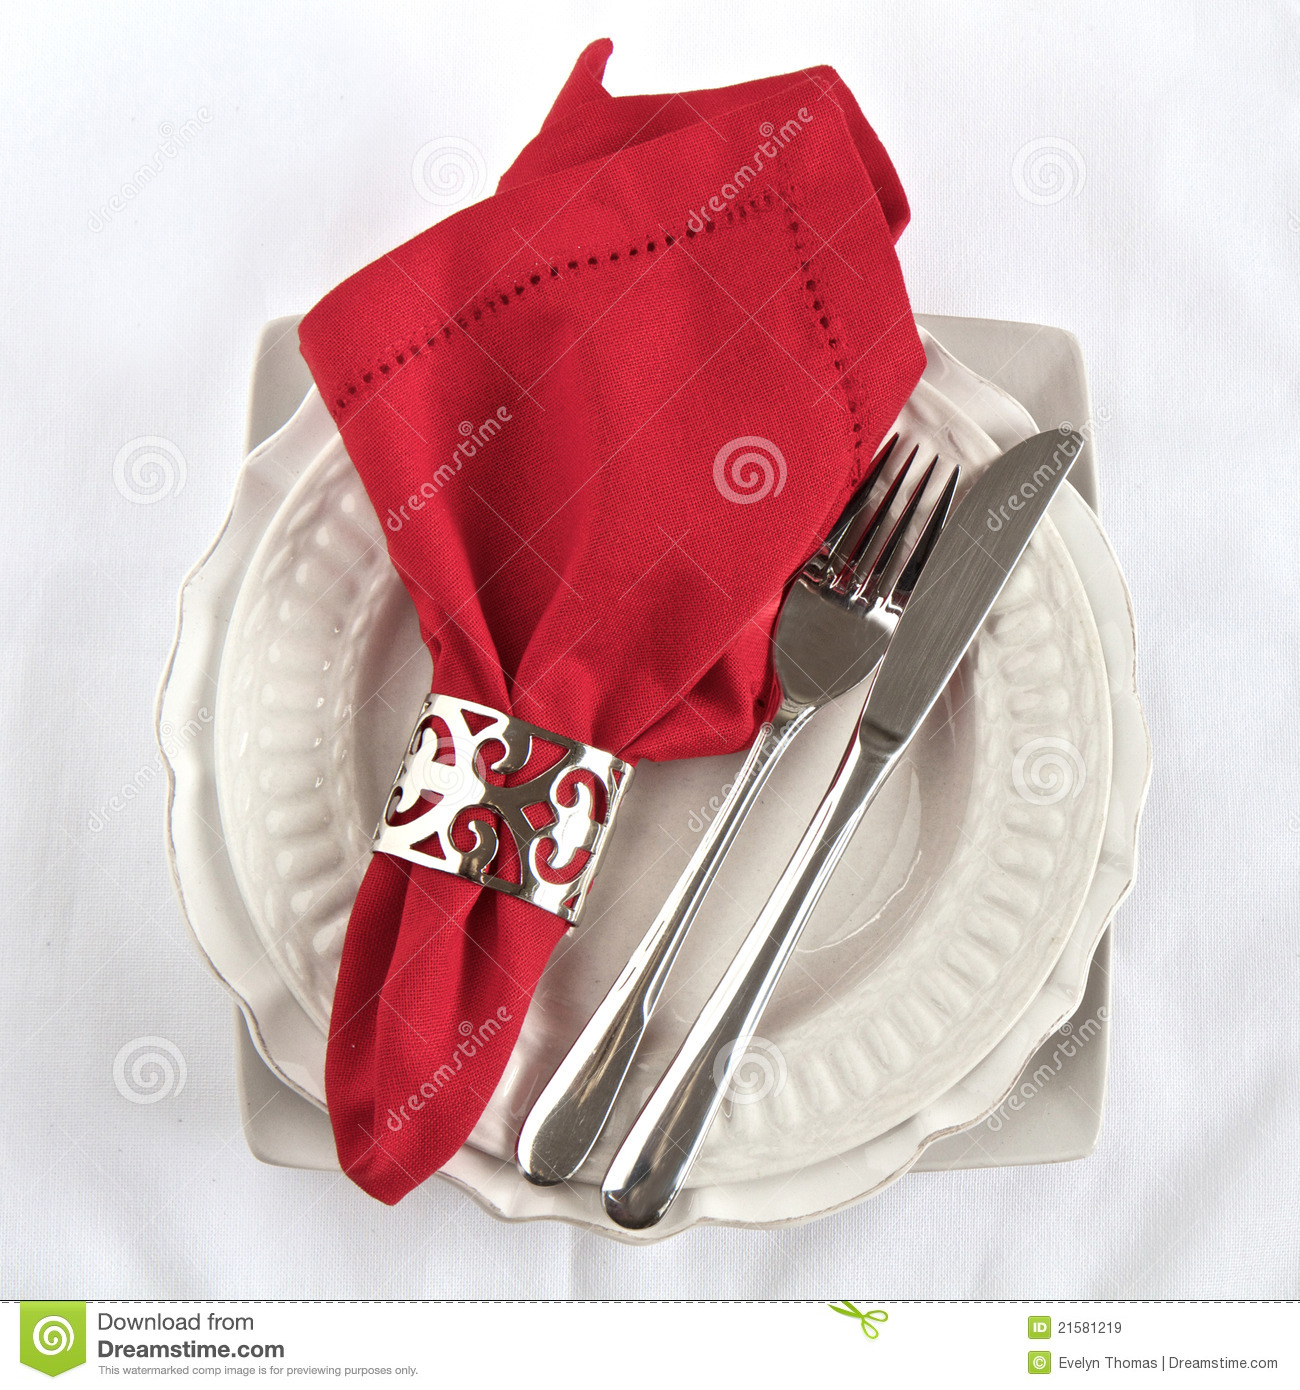 Silverware As A Table Setting With Red Napkin Royalty Free